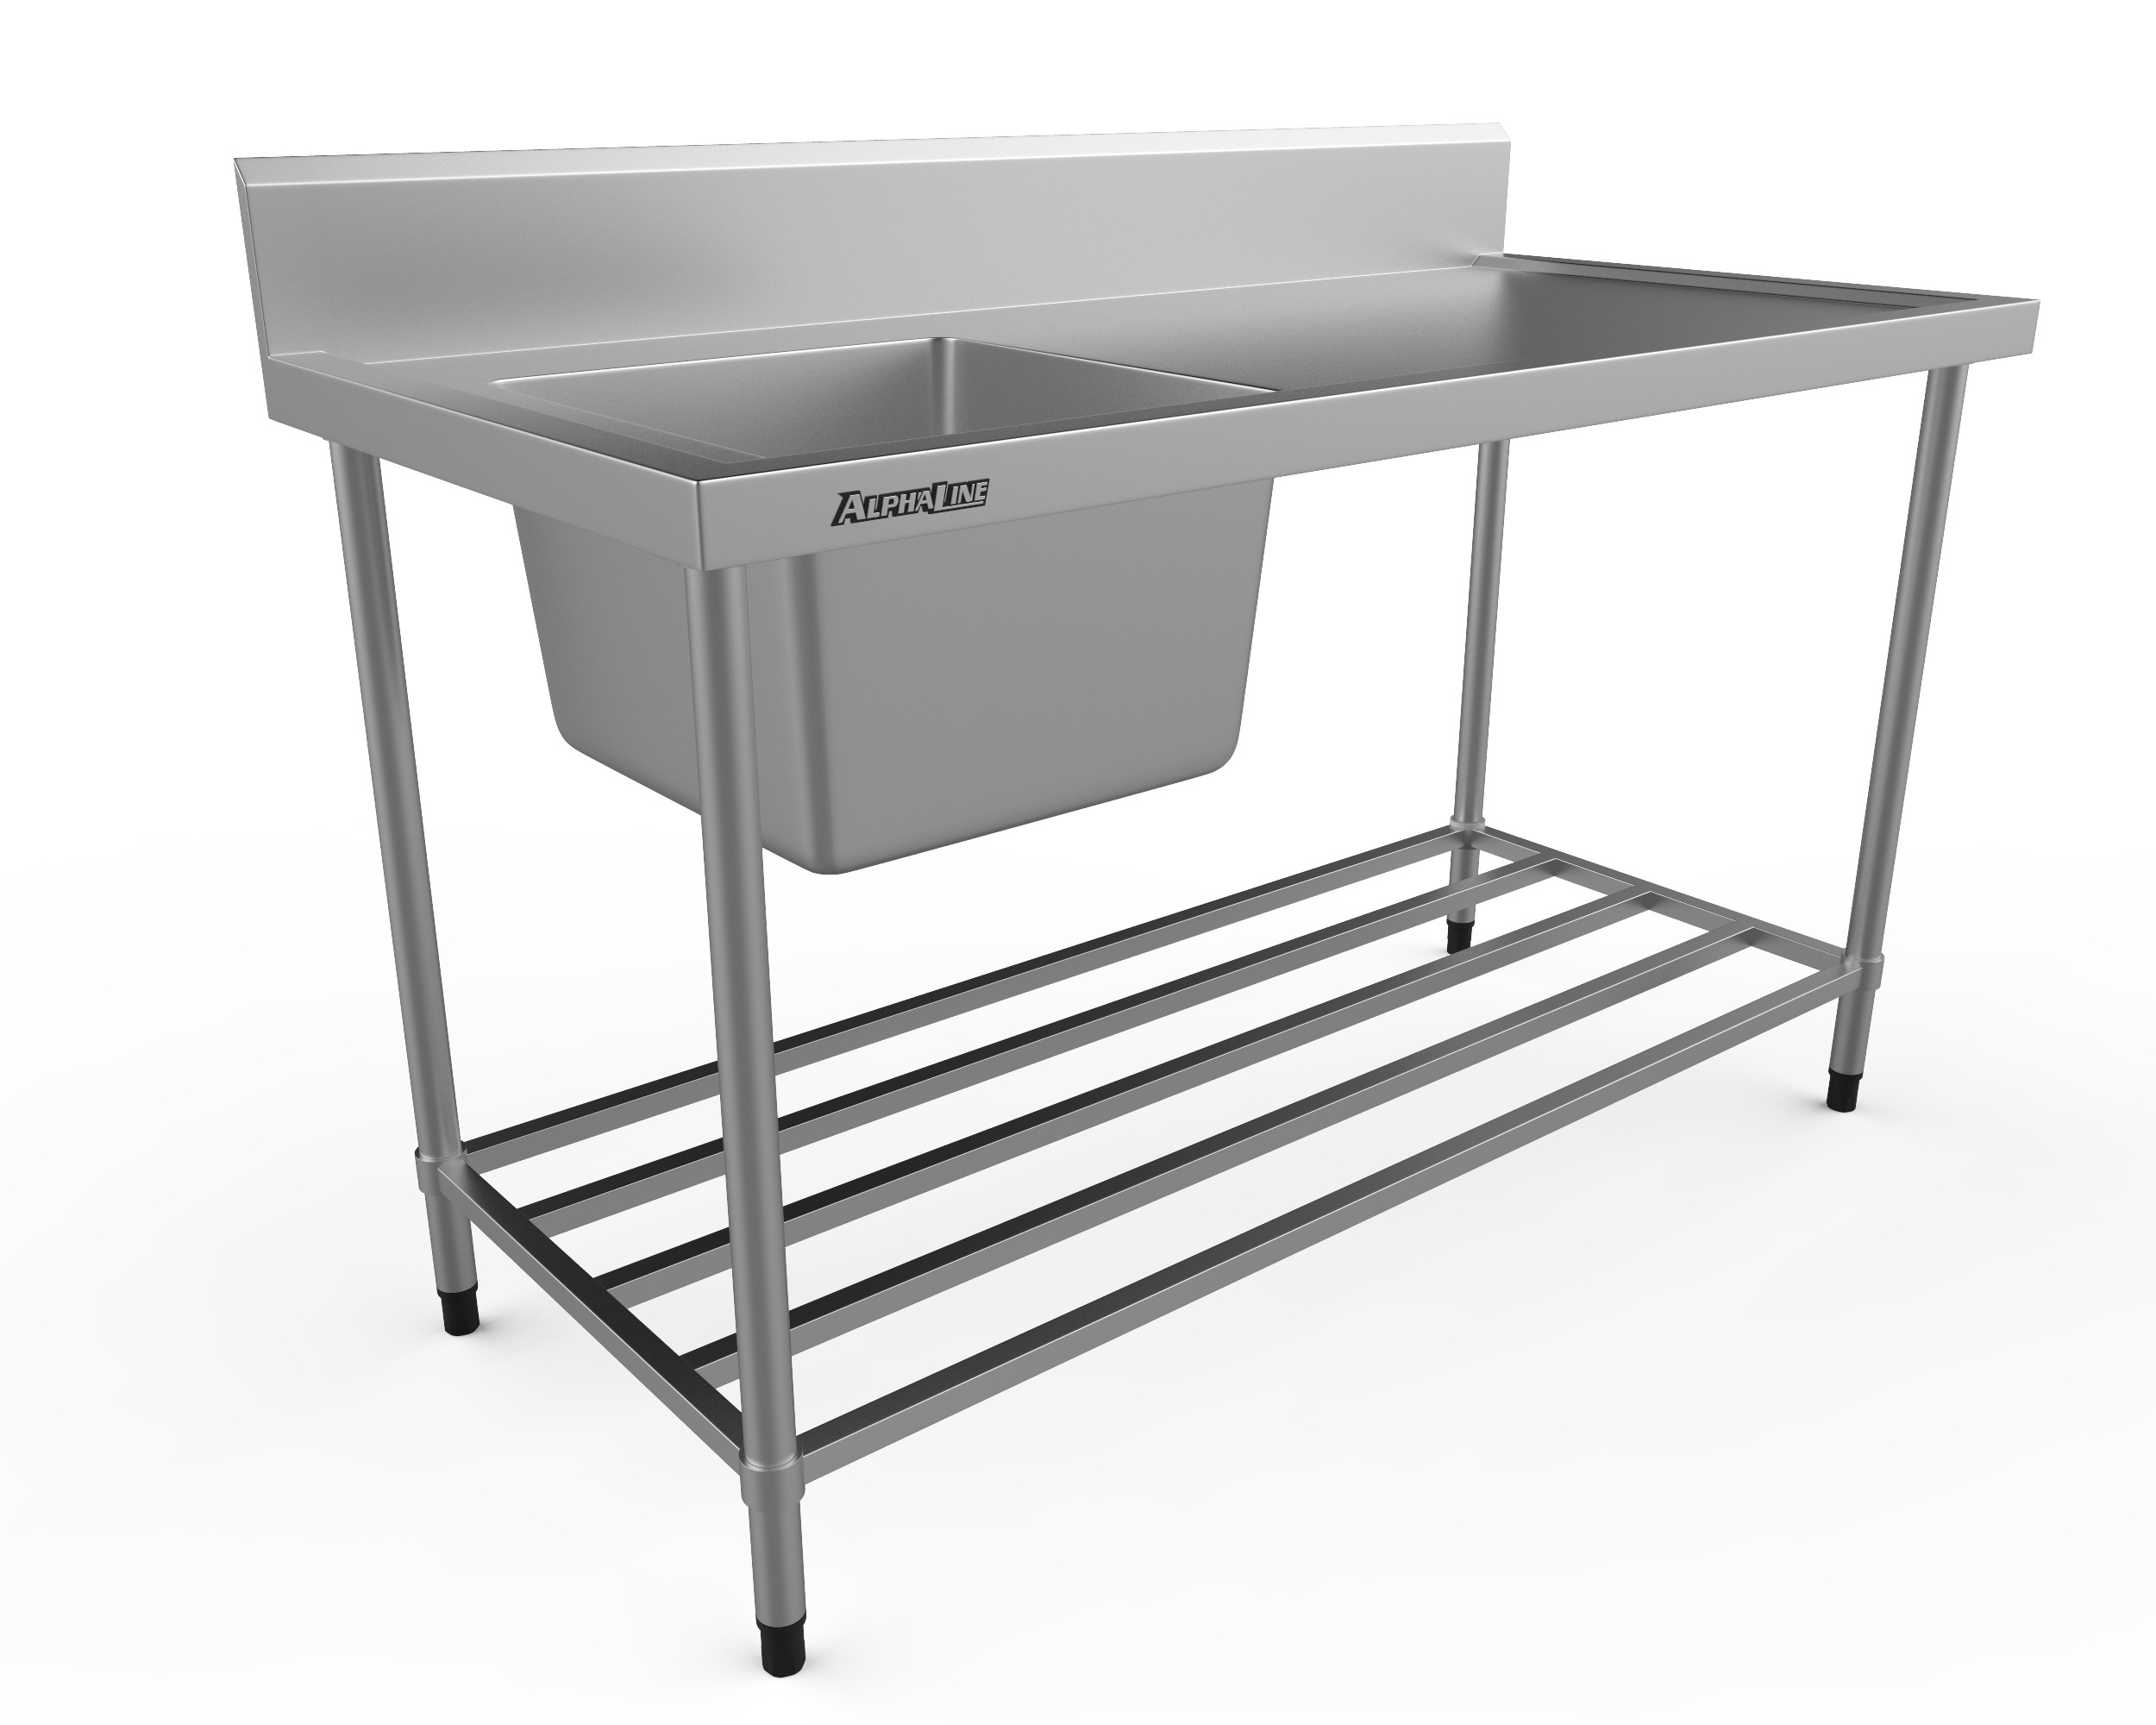 Stainless Steel Sink Bench - 1500 x 700 Left Bowl - XS1-70150L